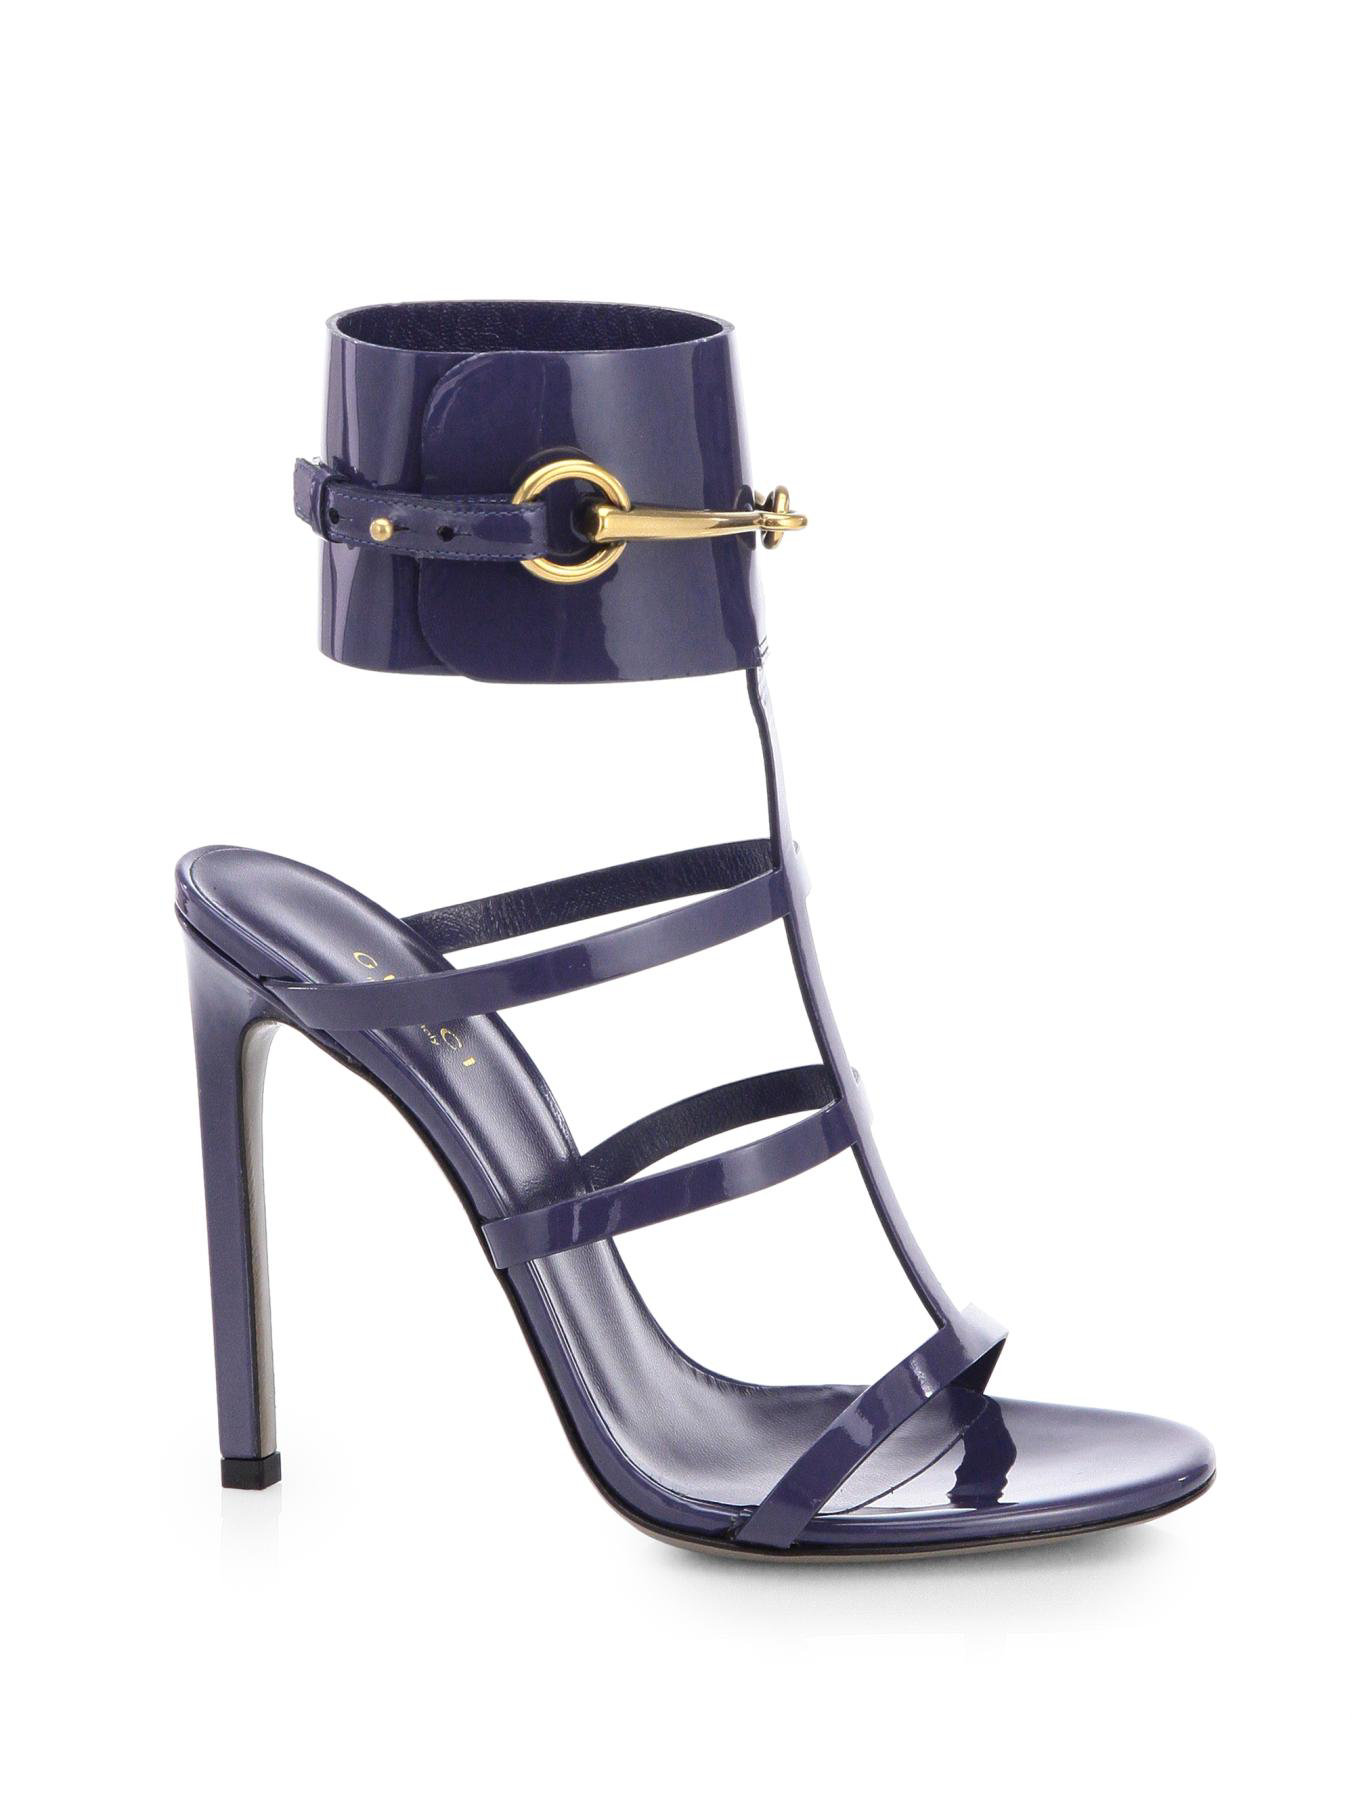 5696005211ee Lyst - Gucci Ursula Patent Leather Horsebit Anklestrap Sandals in Blue